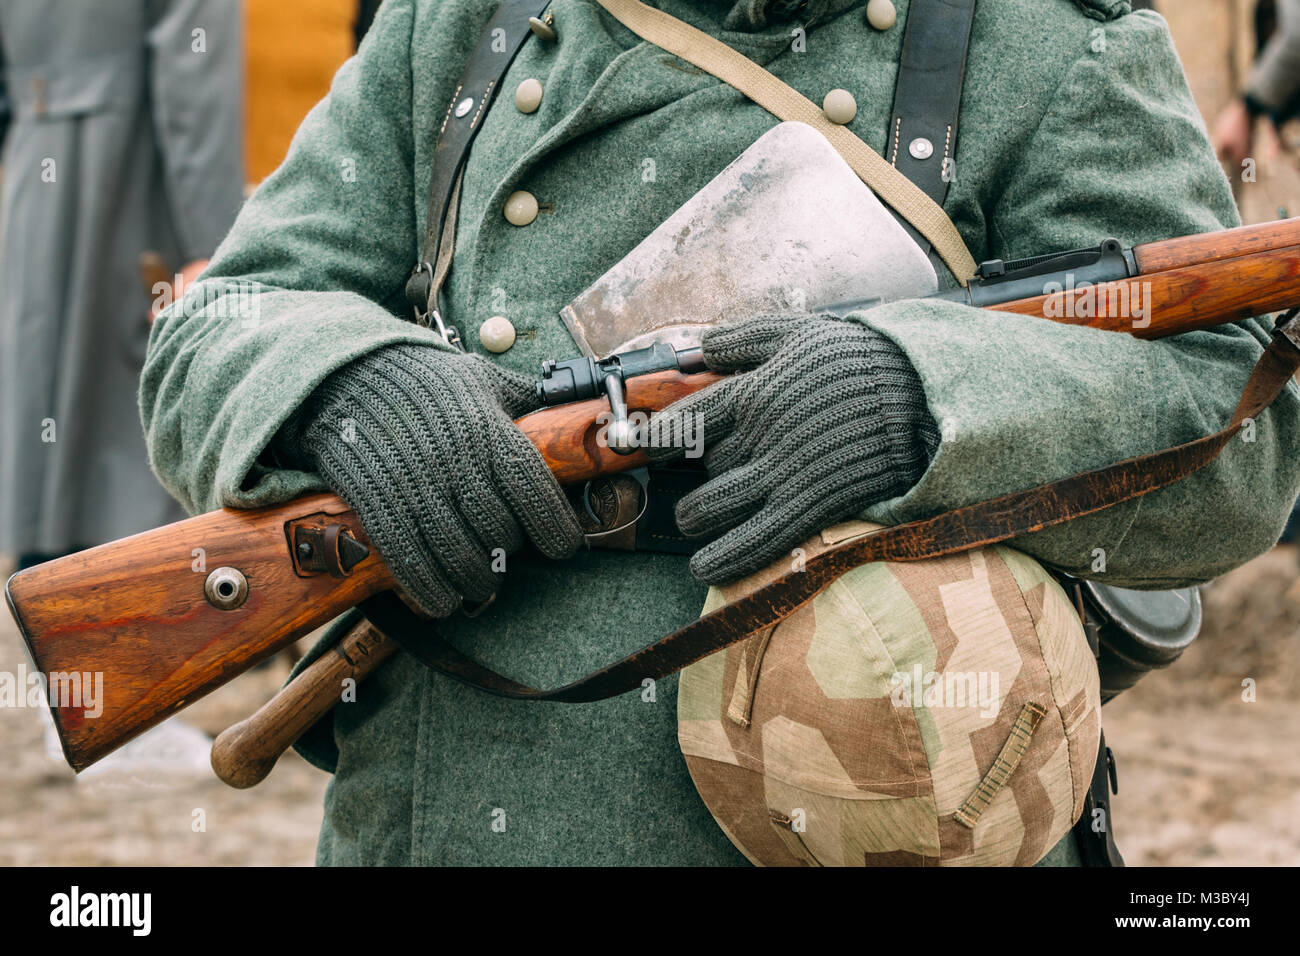 The uniform and outfit of a German soldier with a rifle during the Great Patriotic War. Reconstruction Stock Photo